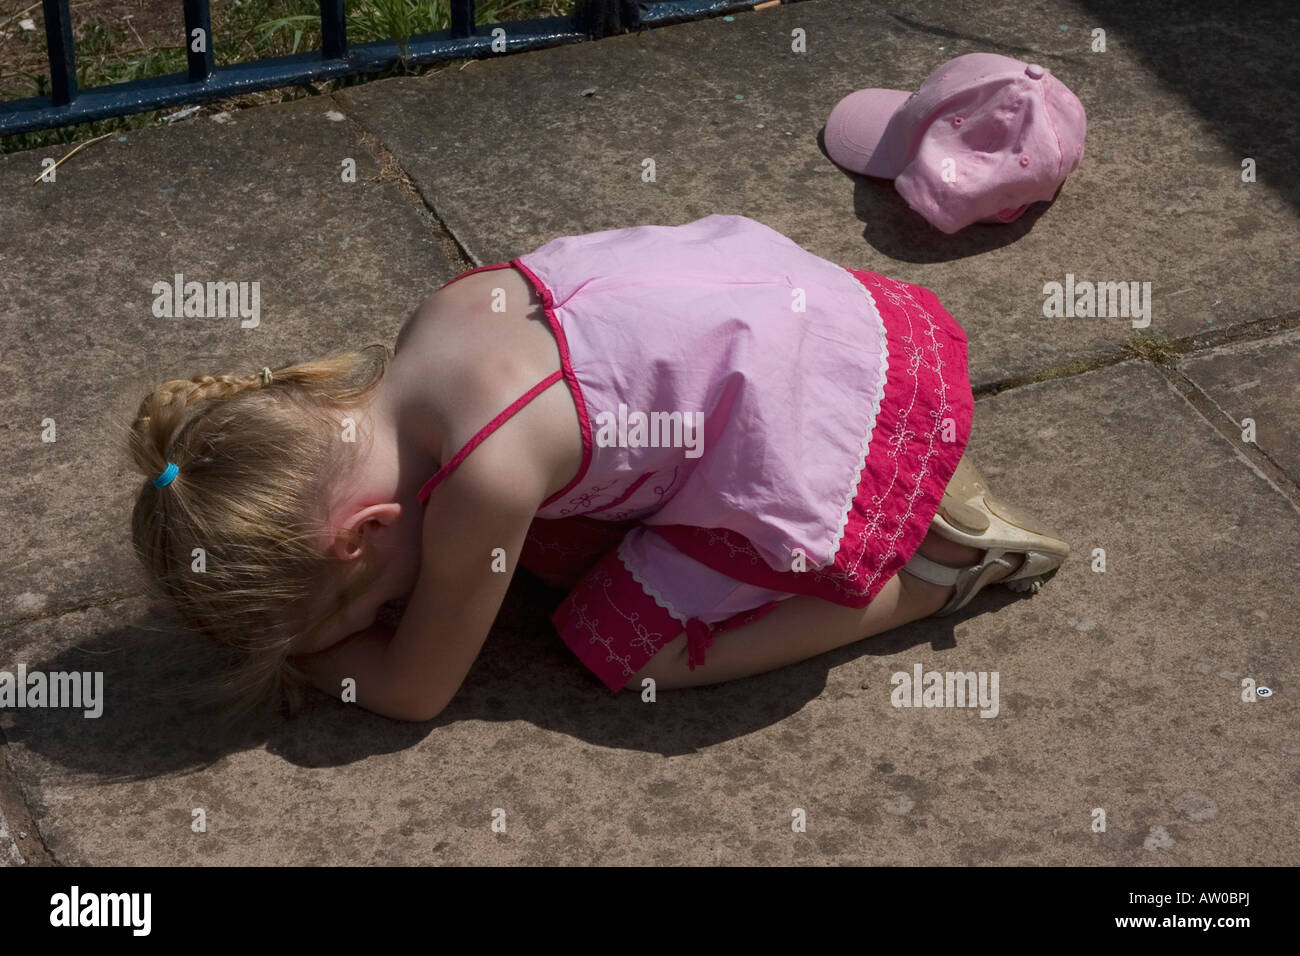 Young girl throwing off hat and having a tantrum. - Stock Image